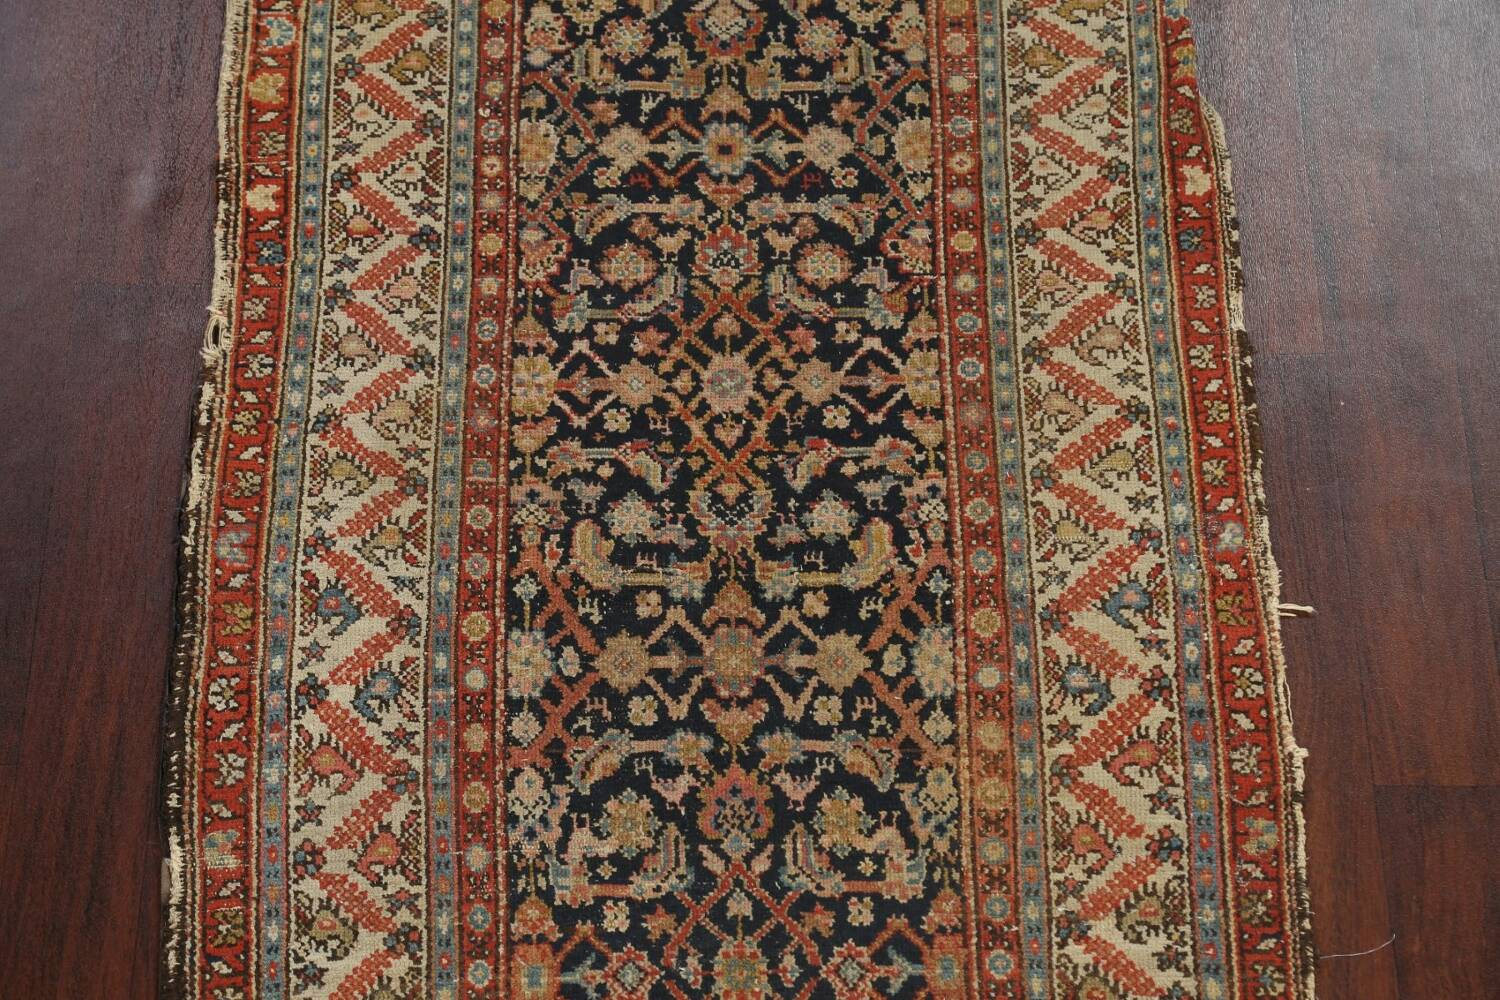 Pre-1900 Antique Vegetable Dye Malayer Persian Rug 3x13 image 4